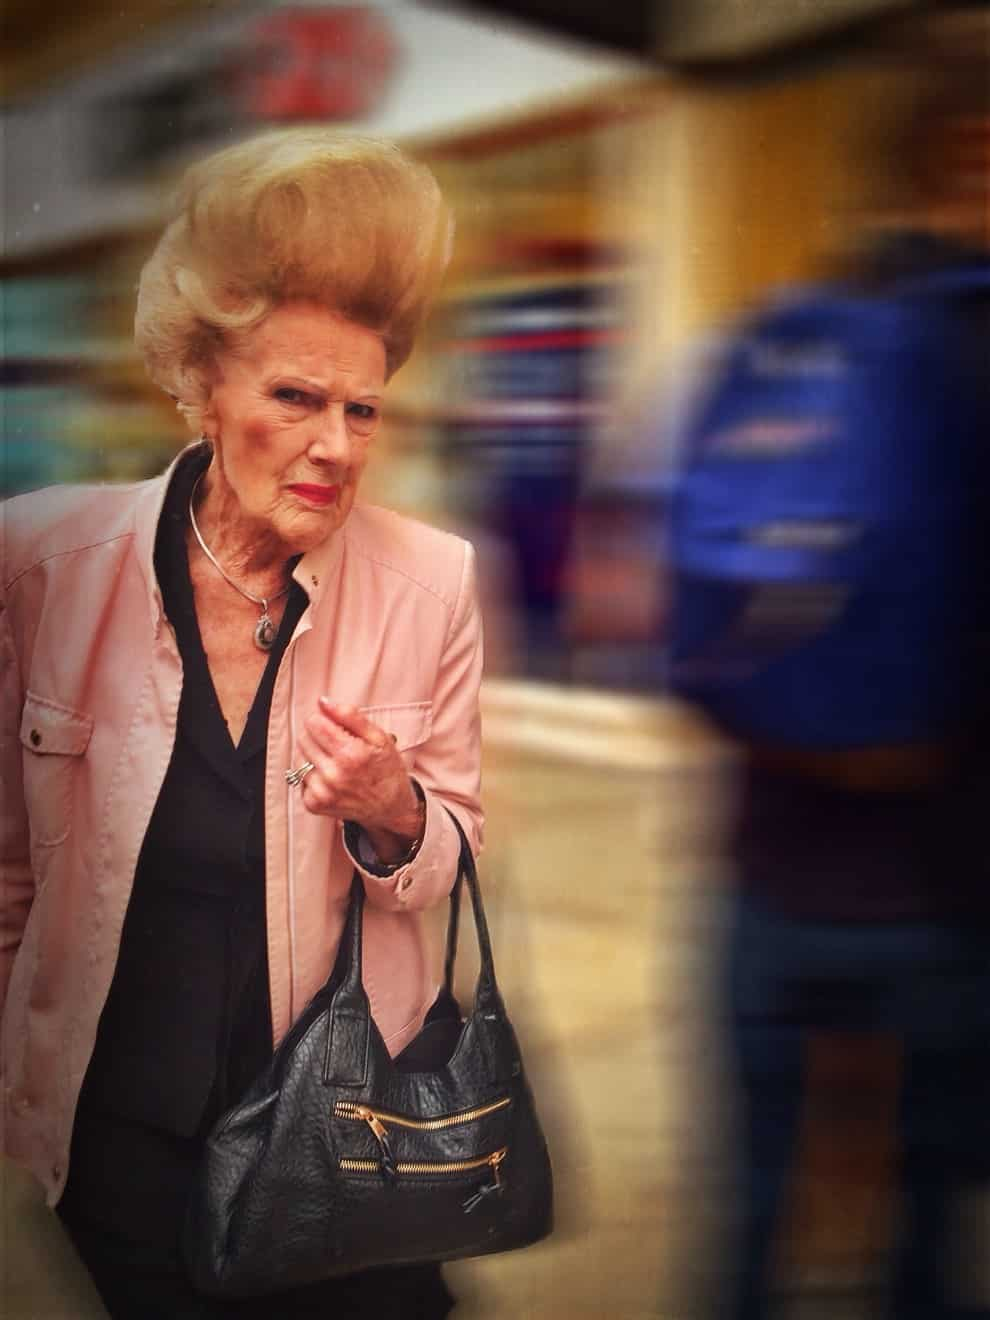 """A real-life Patsy Stone"" from Absolutely Fabulous walks down a street in London."